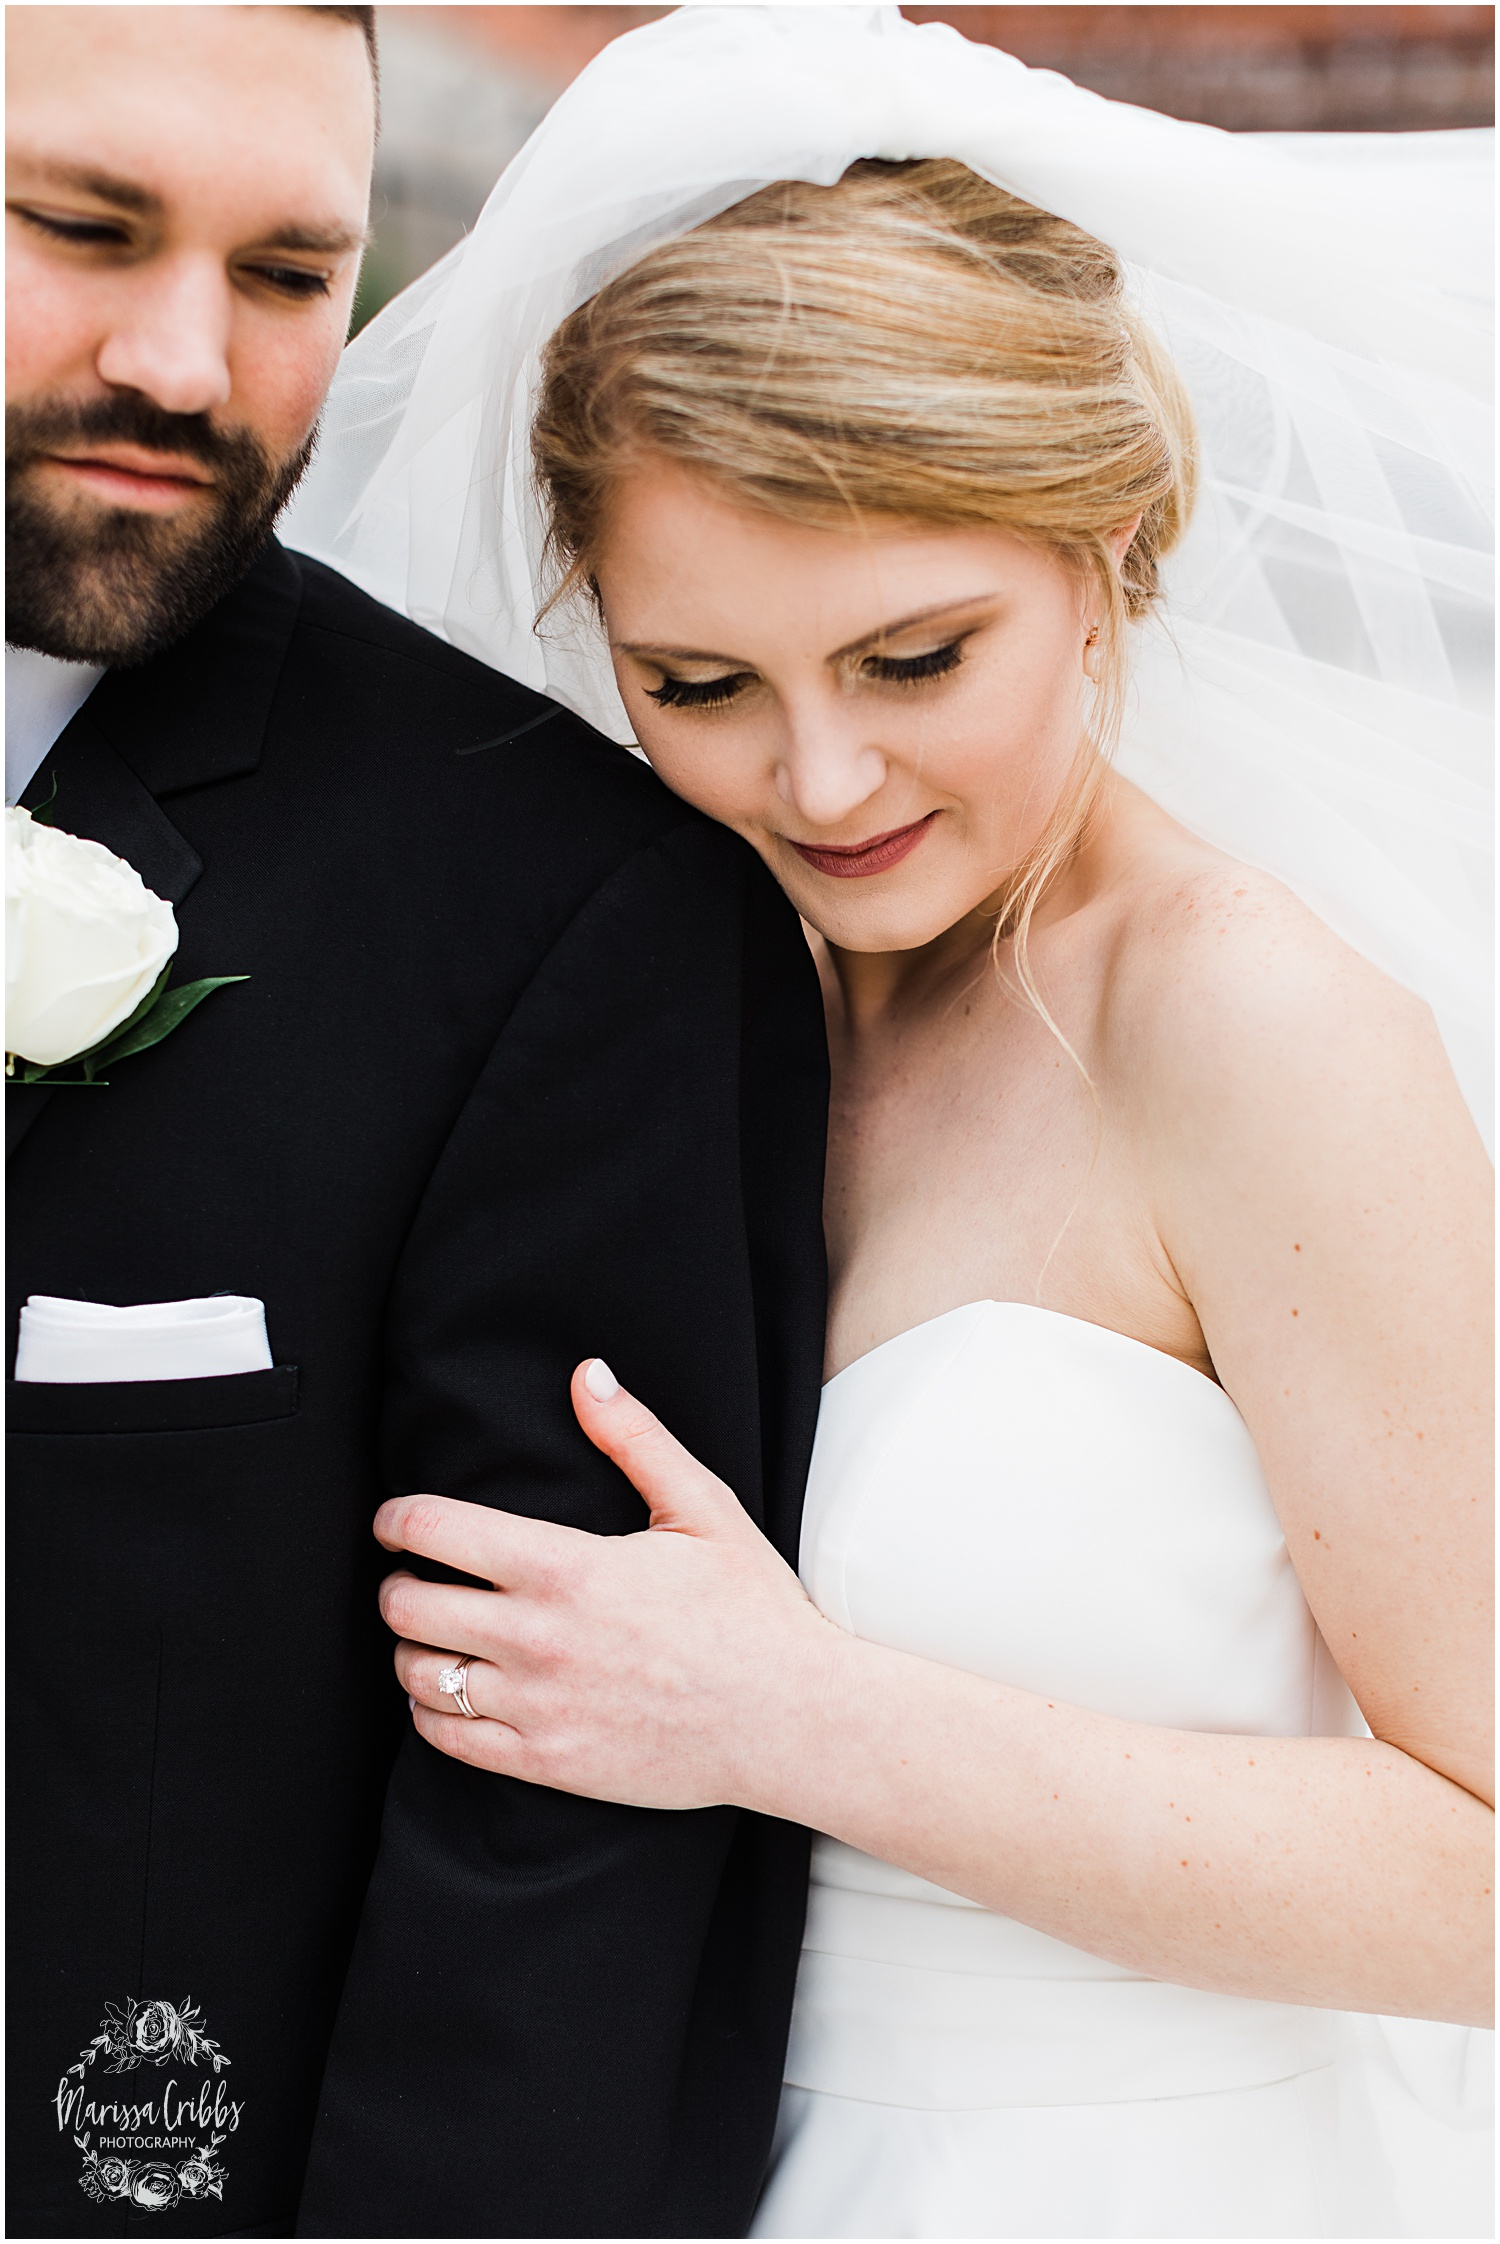 ABBY & CHARLIE WEDDING | THE HUDSON EVENT SPACE WEDDING | MARISSA CRIBBS PHOTOGRAPHY_7516.jpg